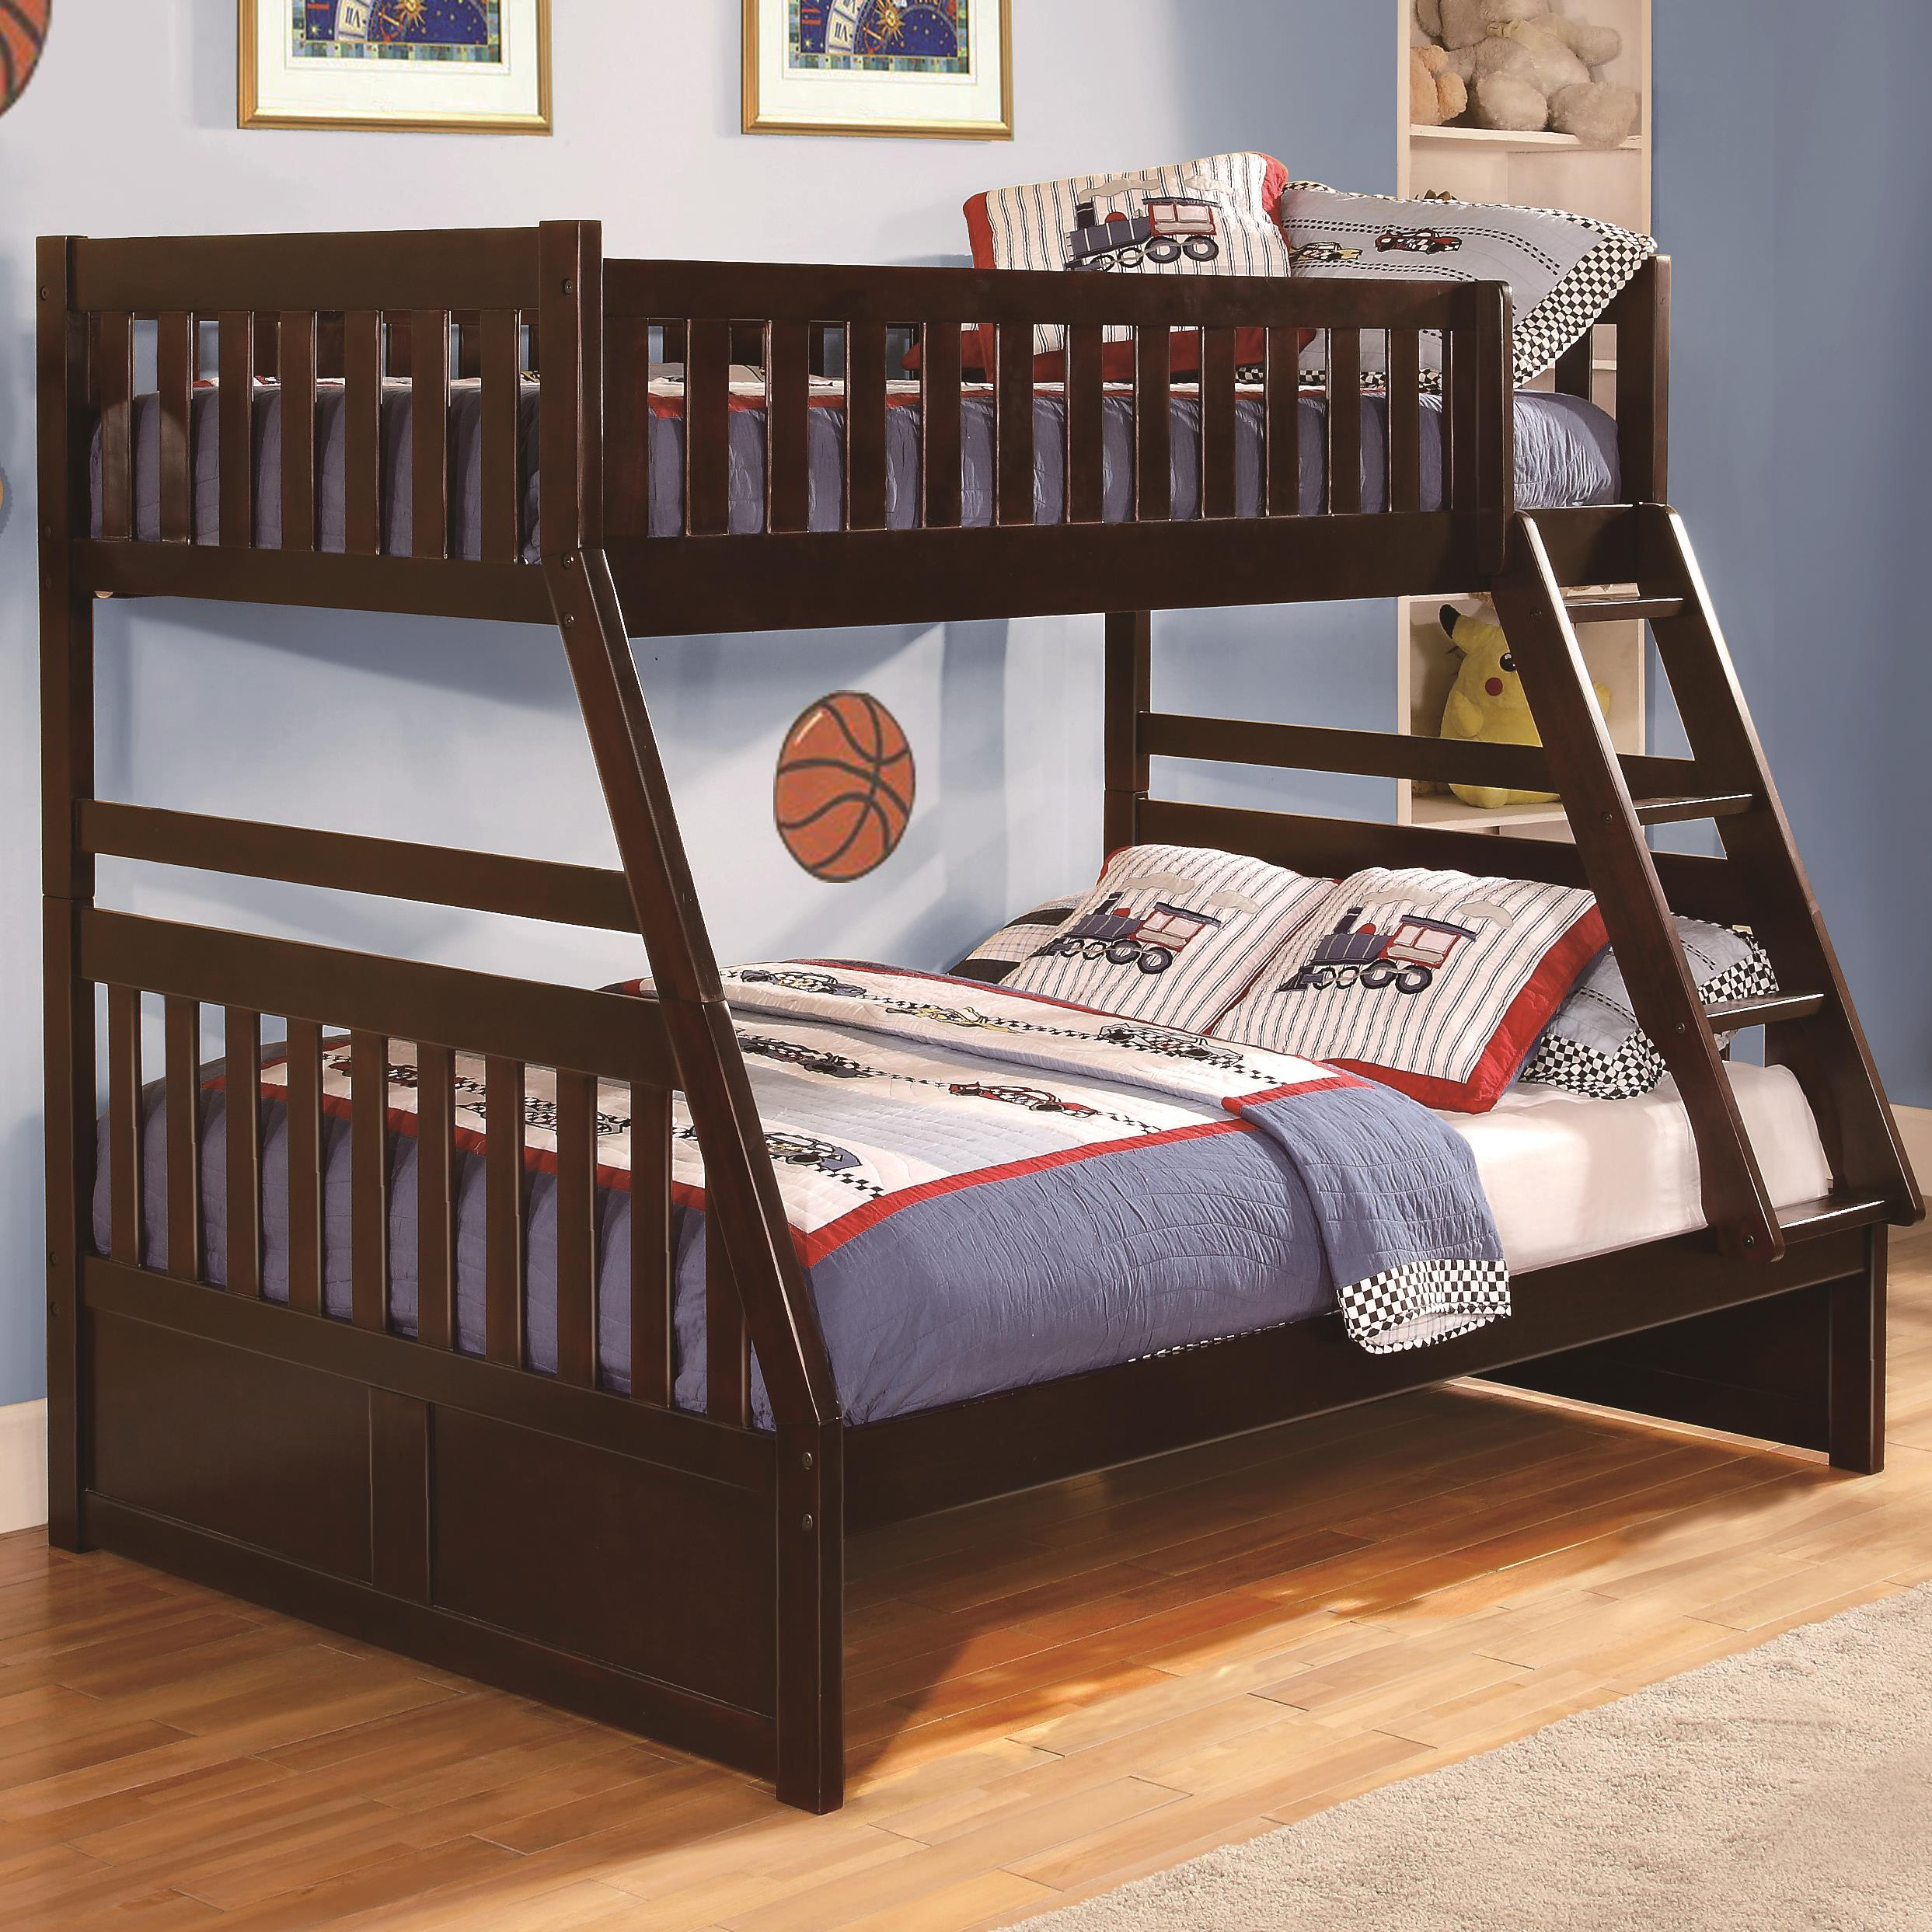 homelegance rowe twin over full bunk bed with slats boulevard home furnishings bunk beds. Black Bedroom Furniture Sets. Home Design Ideas